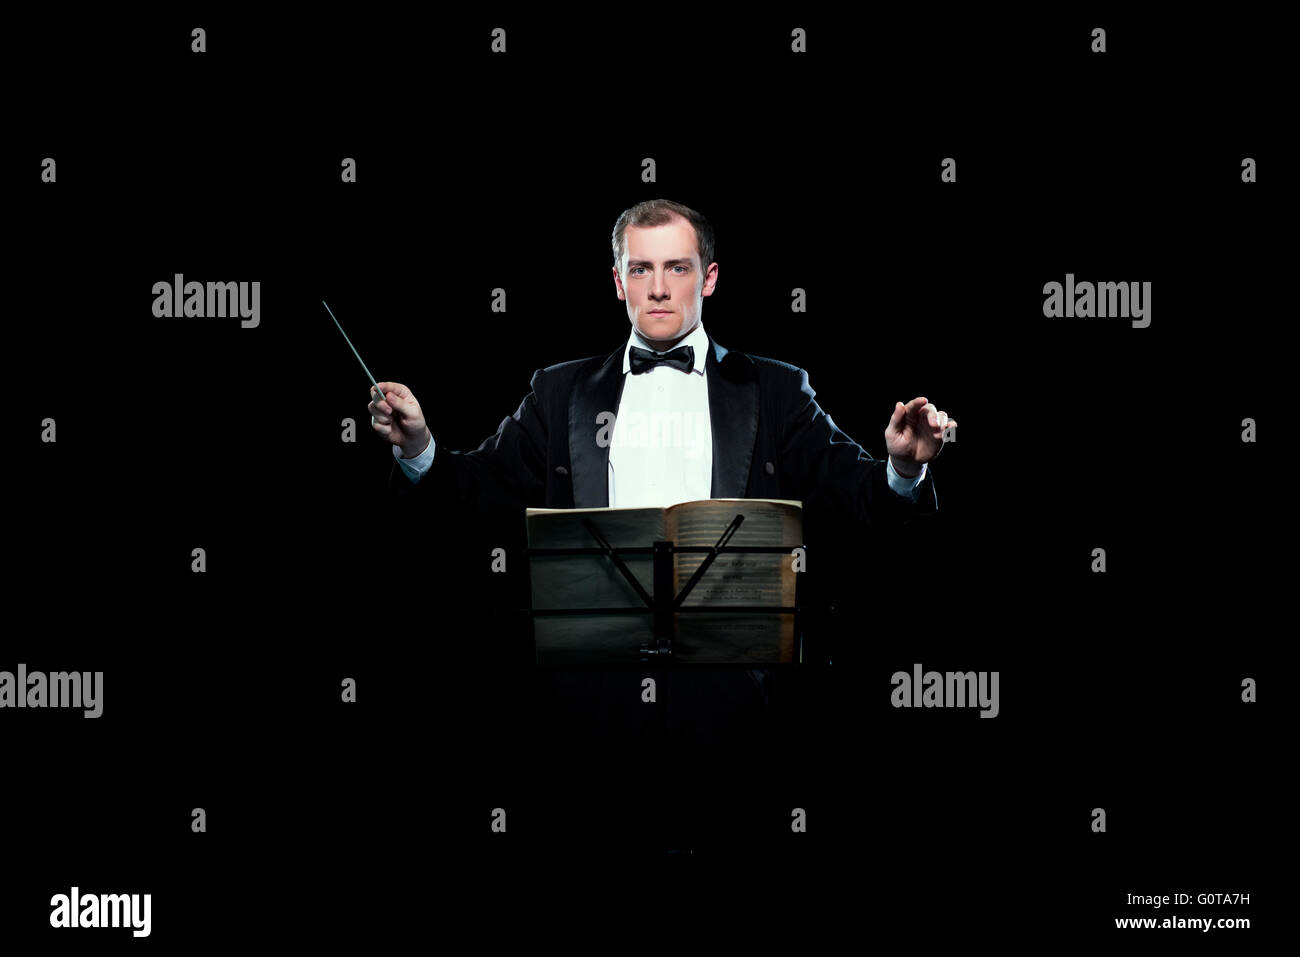 Studio photo of music conductor holding his baton - Stock Image